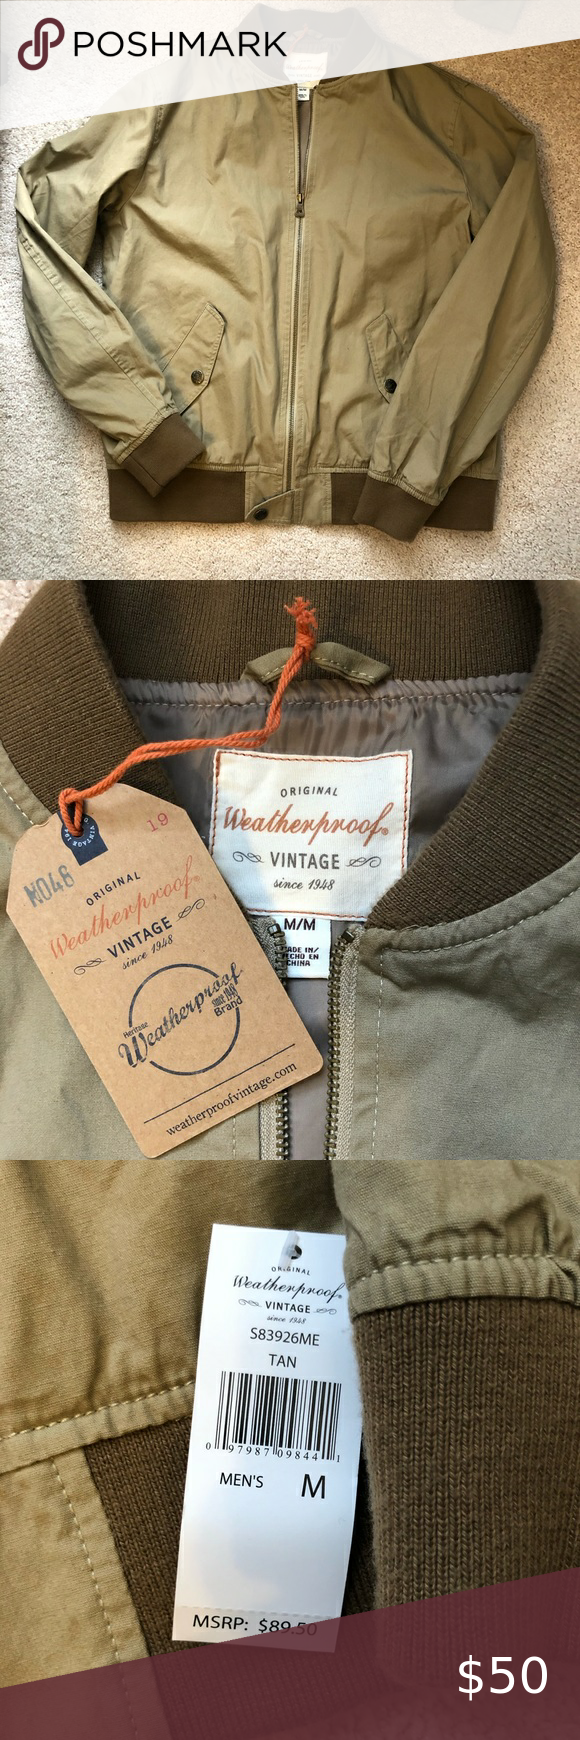 Original Weatherproof Vintage Full Zip Jacket Never Worn New With Tags Size M Repels The Elements Provides F Zip Jackets Jackets Vintage Jacket